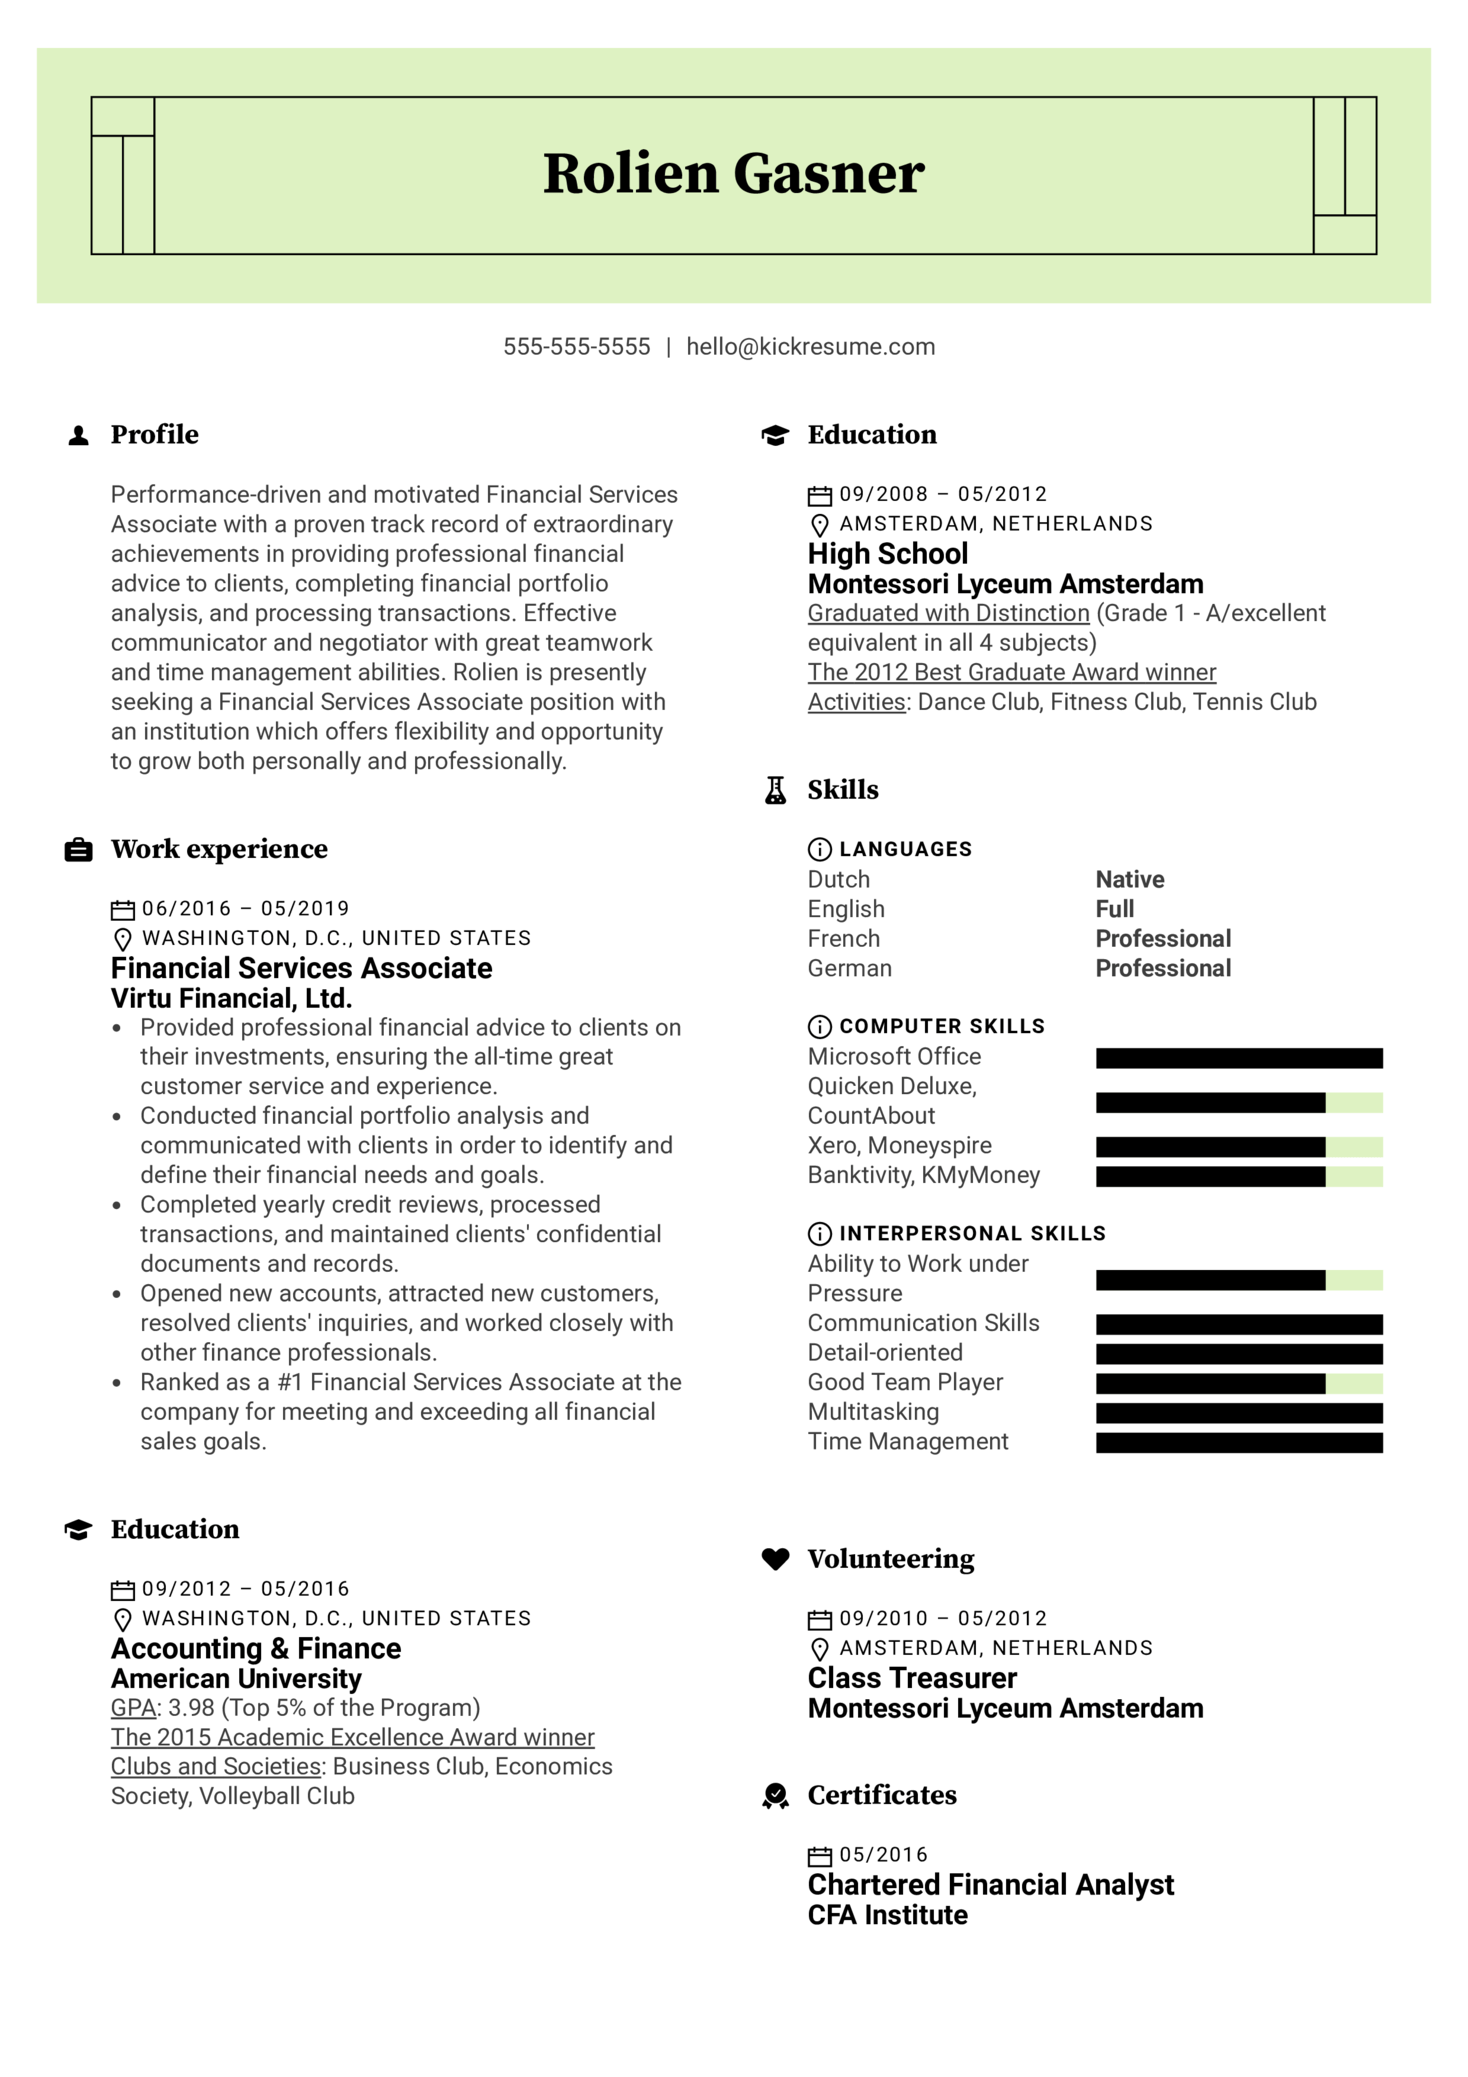 Financial Services Associate Resume Example (Part 1)